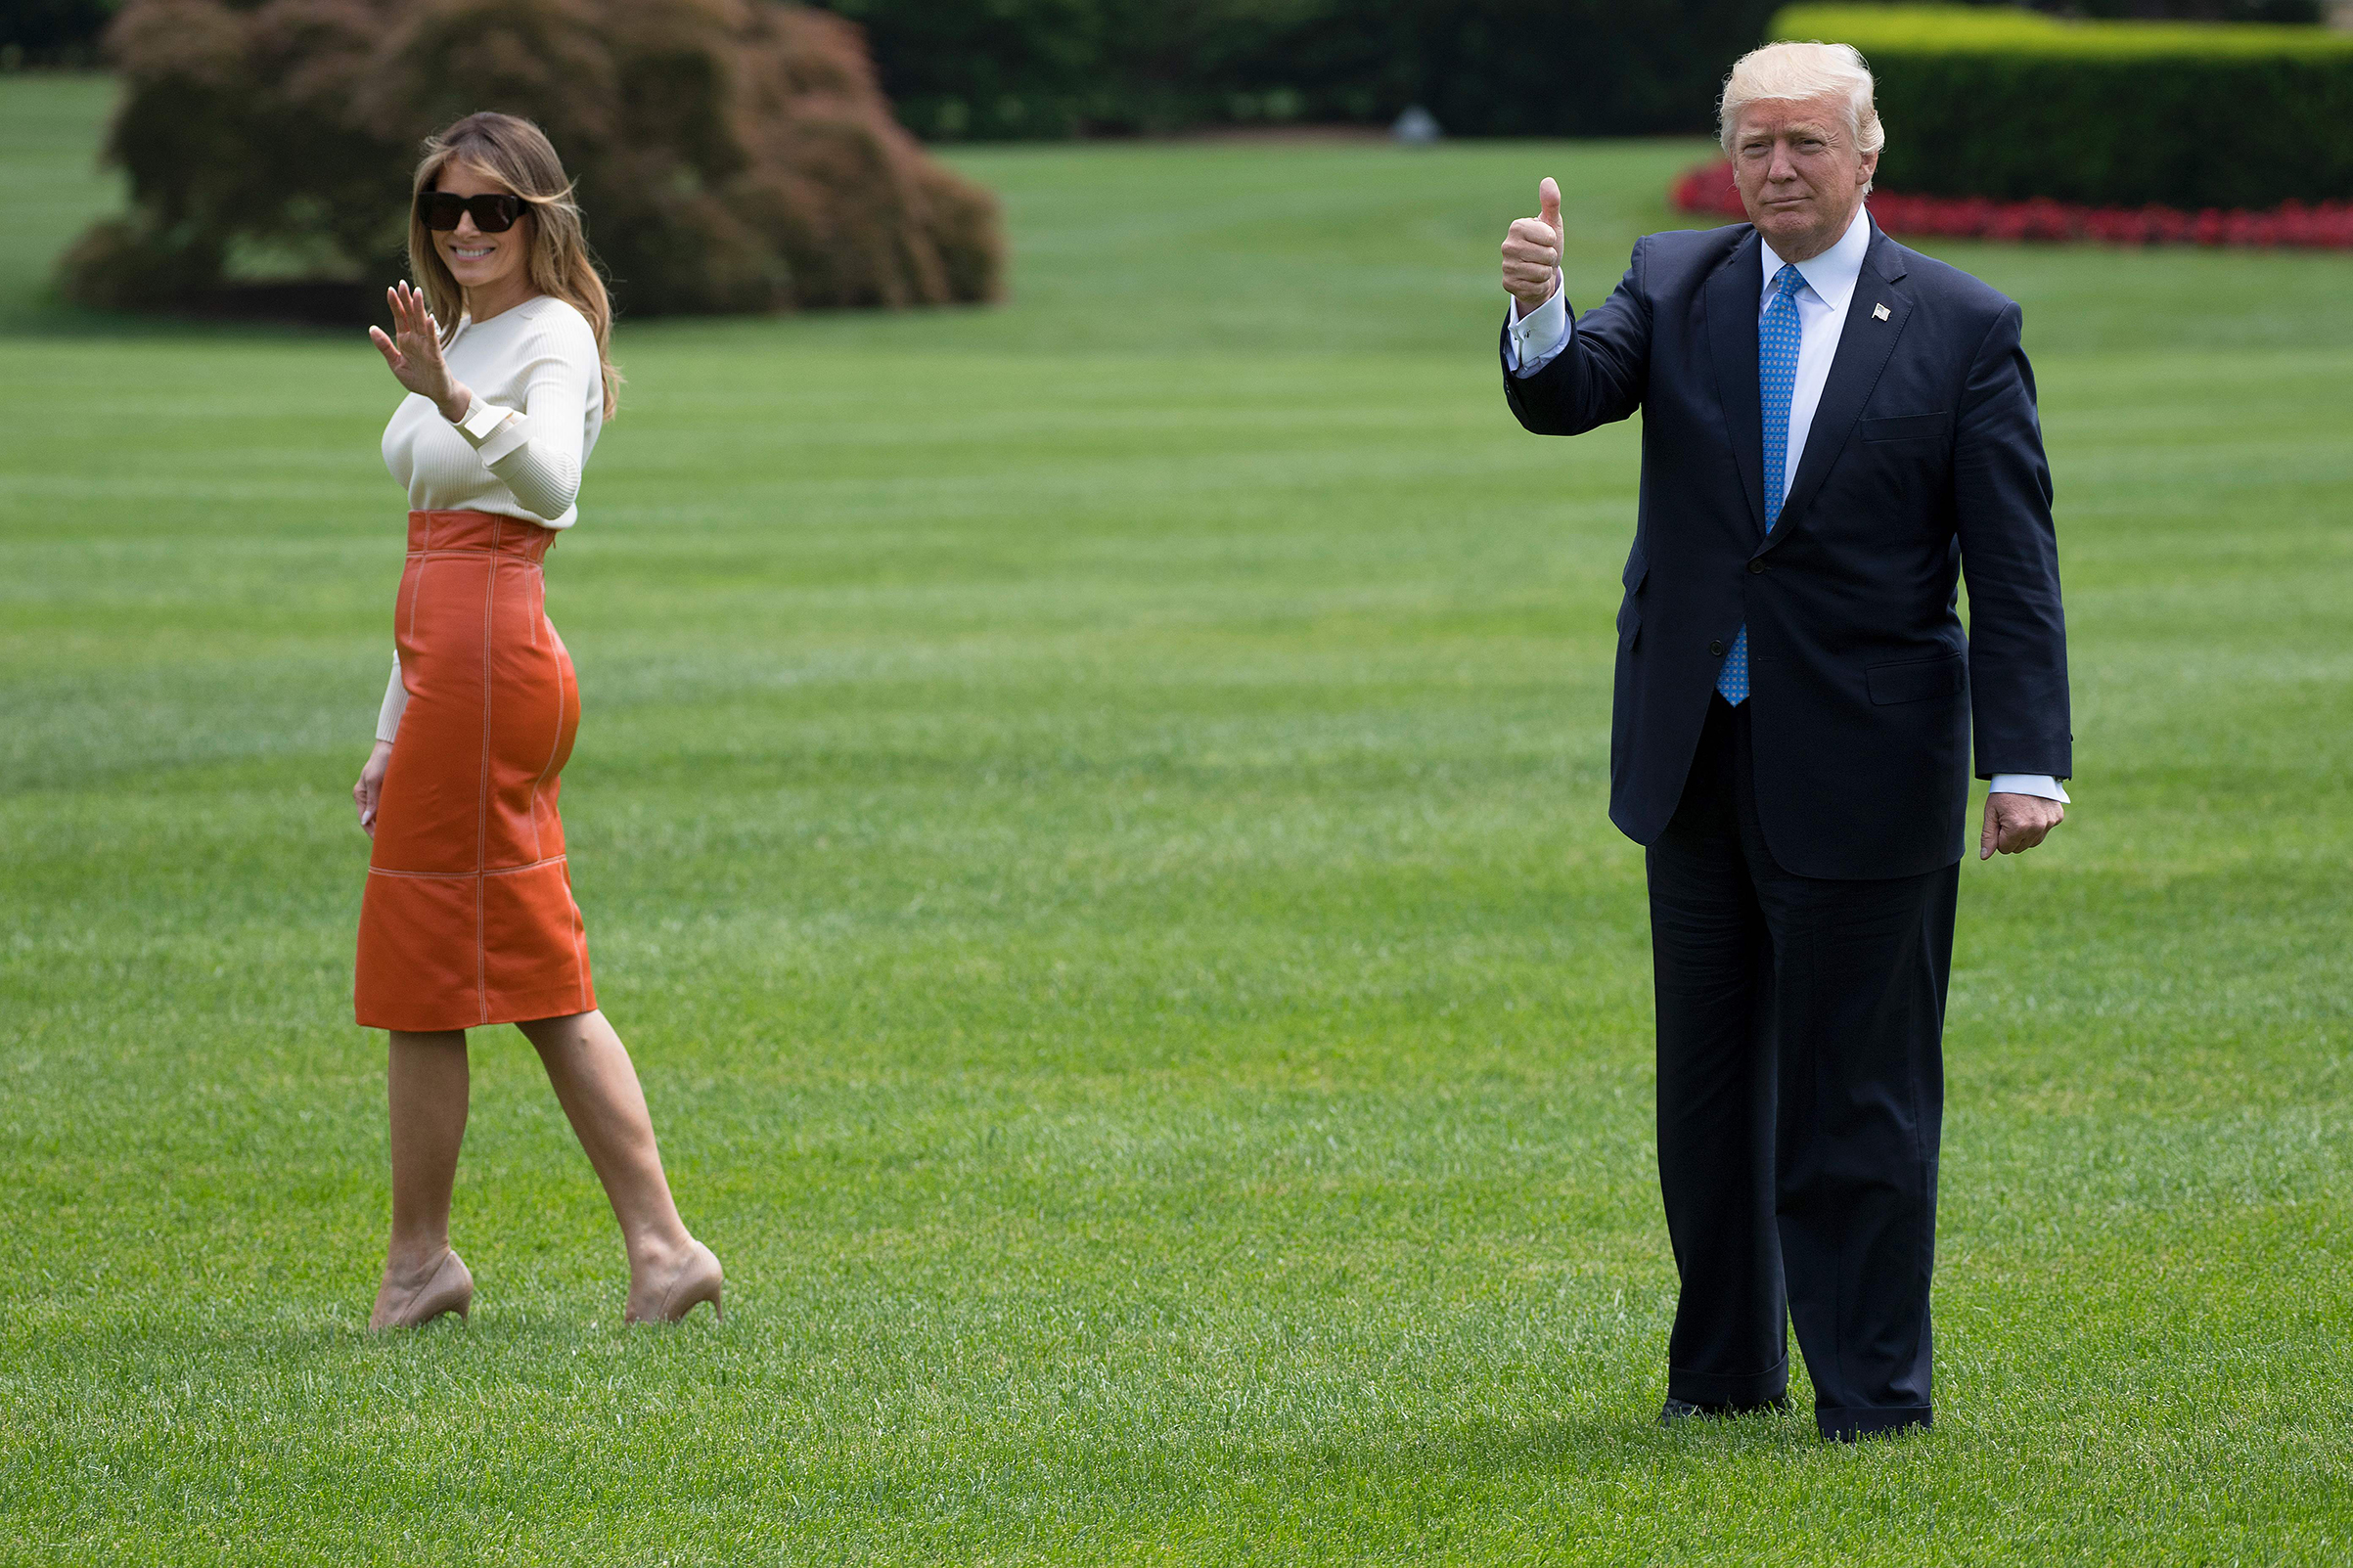 President Donald Trump (R) gives a thumbs up as he and First Lady Melania Trump wearing a Max Mara sweater and Hervé Pierre leather skirt, depart the White House in Washington, DC, May 19, 2017.